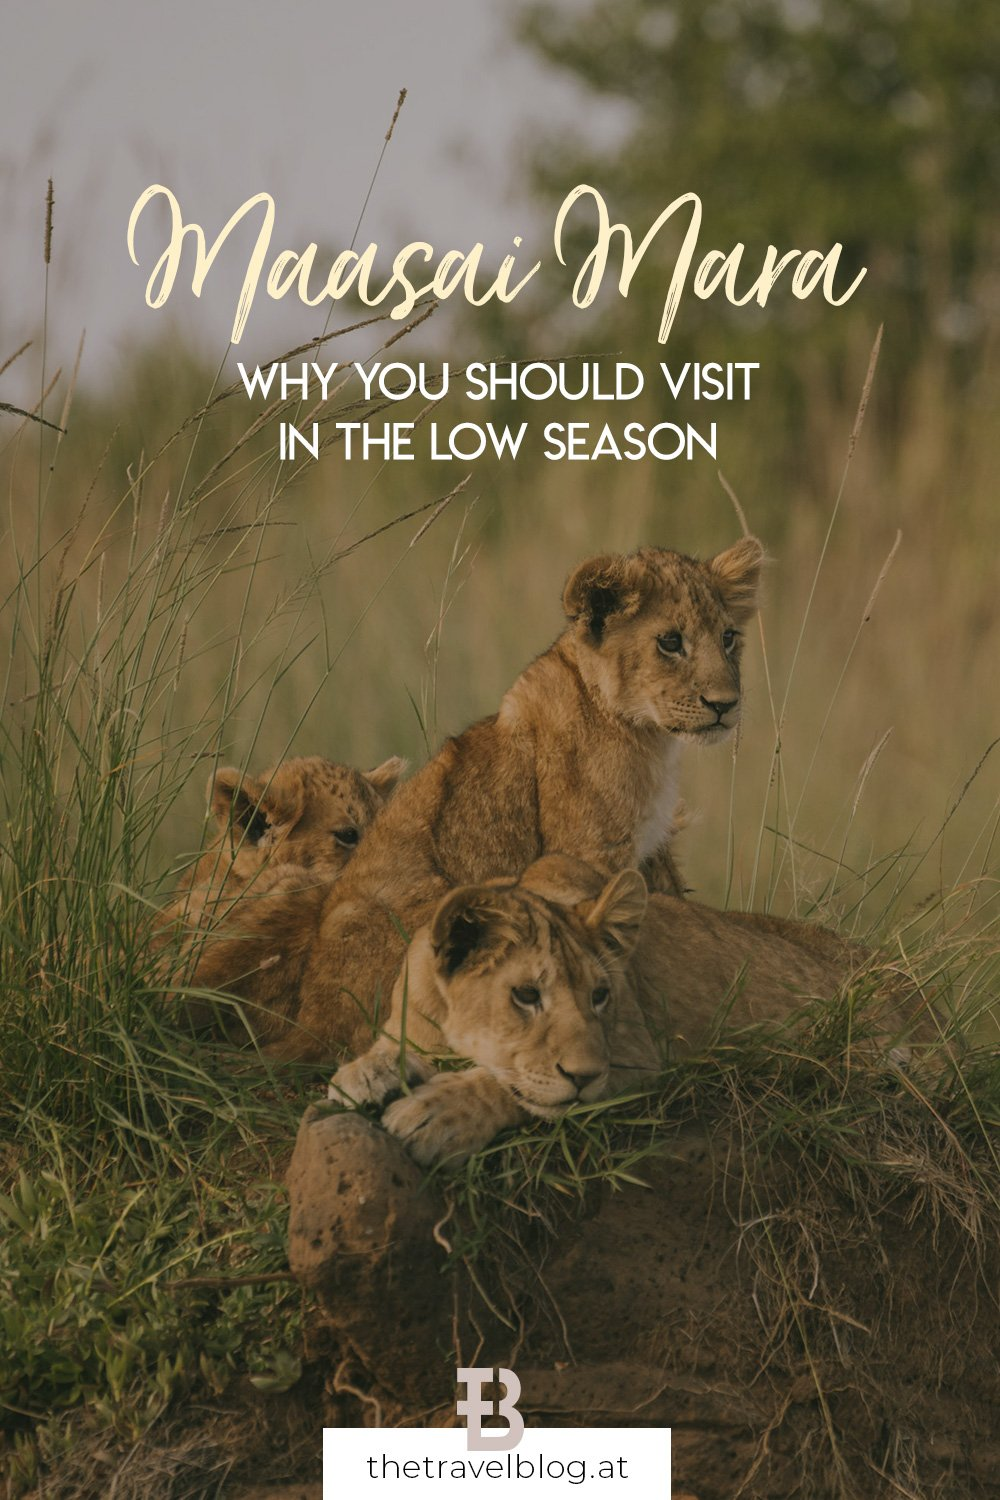 Why you should visit the Maasai Mara in the low season and where to stay locally